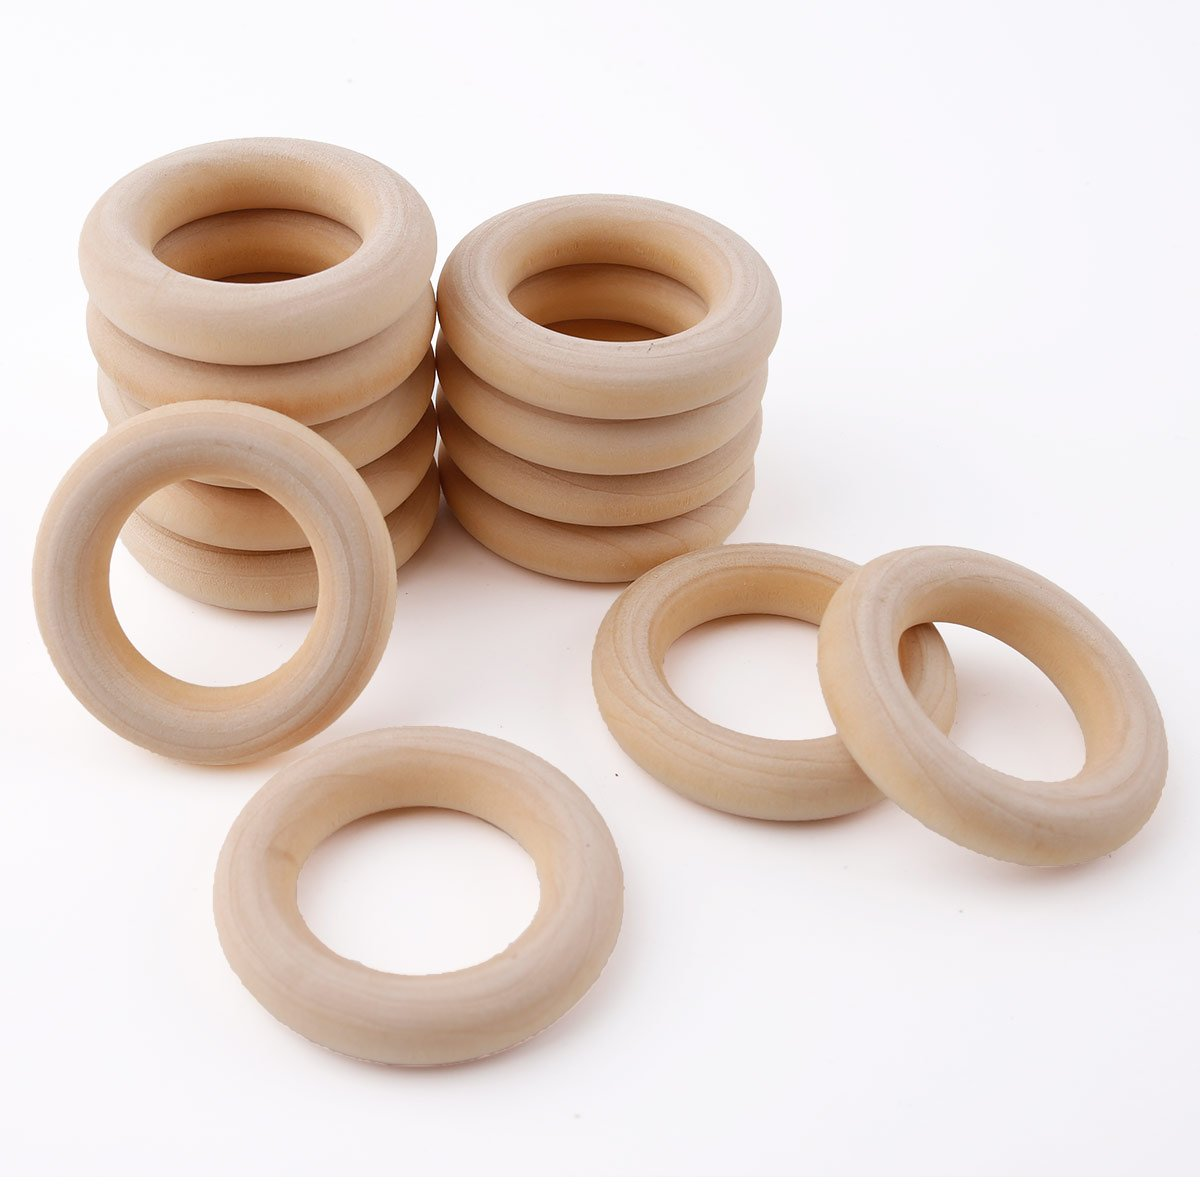 Teething Rings for Babies 5.5cm 20pcs Maple Original Wood Teether DIY jewelry Toys Infant Rattle HAO JIE XC-SWR007 2.1in 0.35in thick